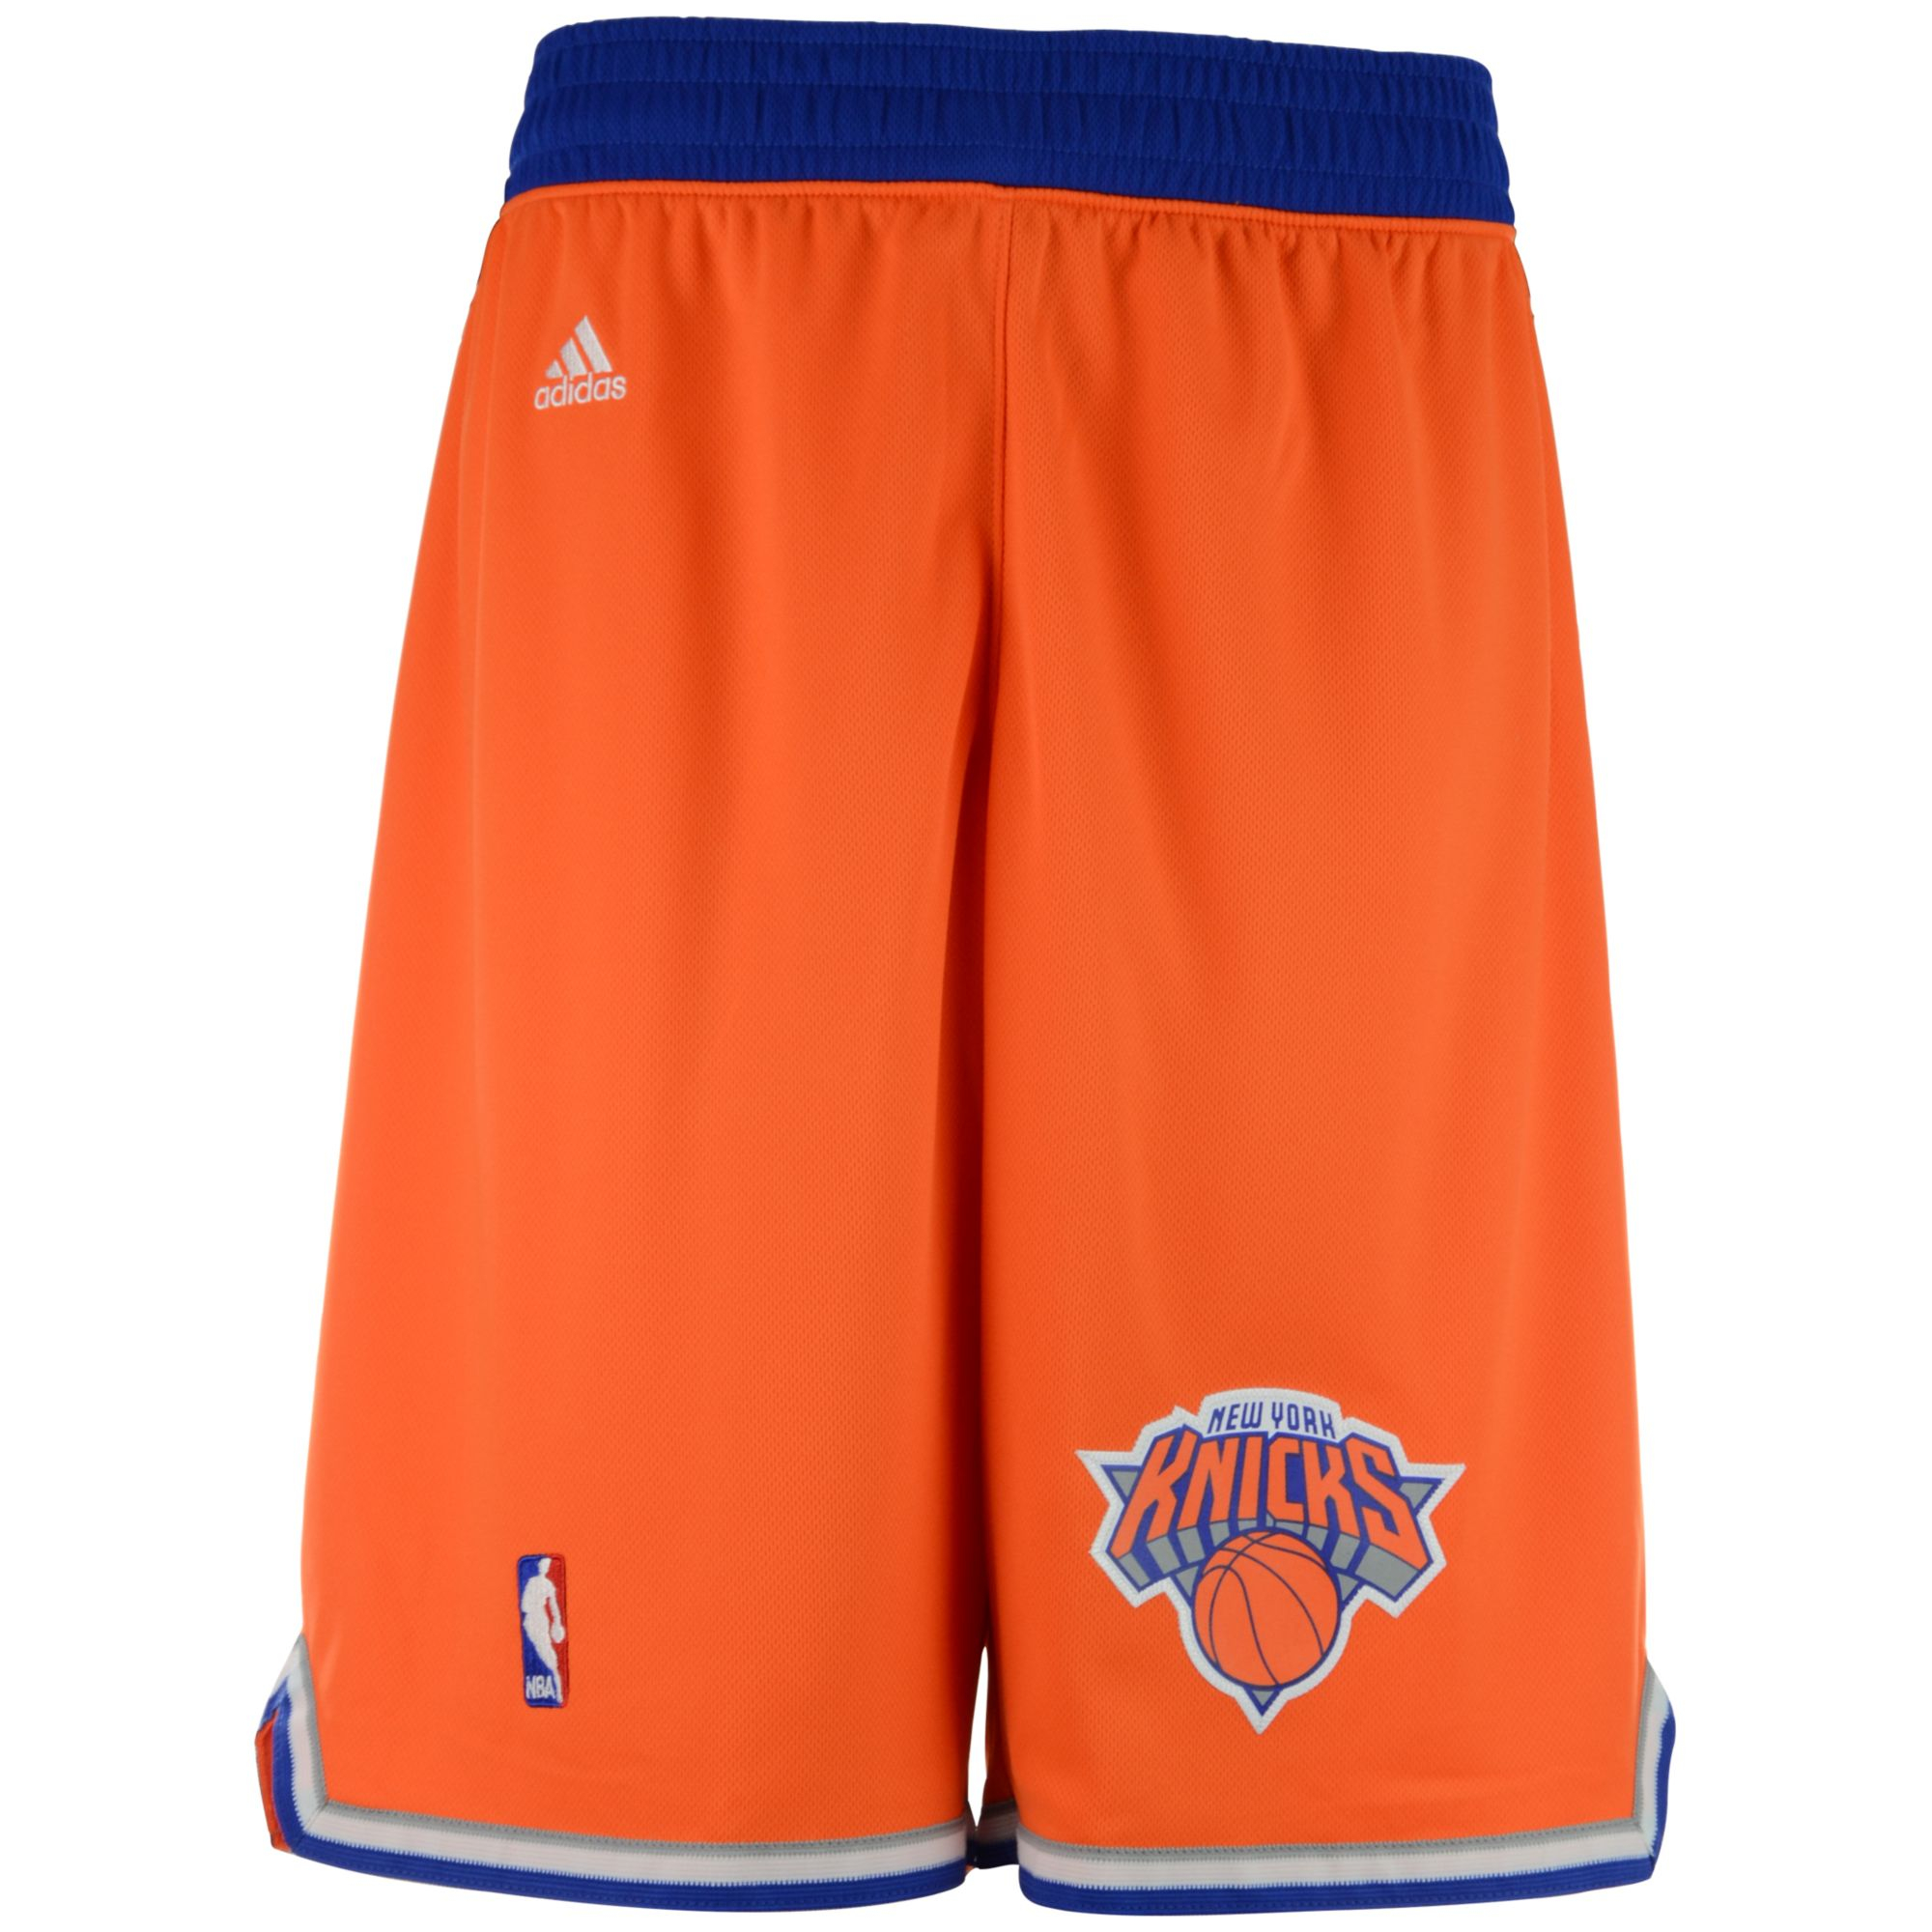 61fb1cc9109 ... promo code for lyst adidas mens new york knicks swingman shorts in  orange for men a1c69